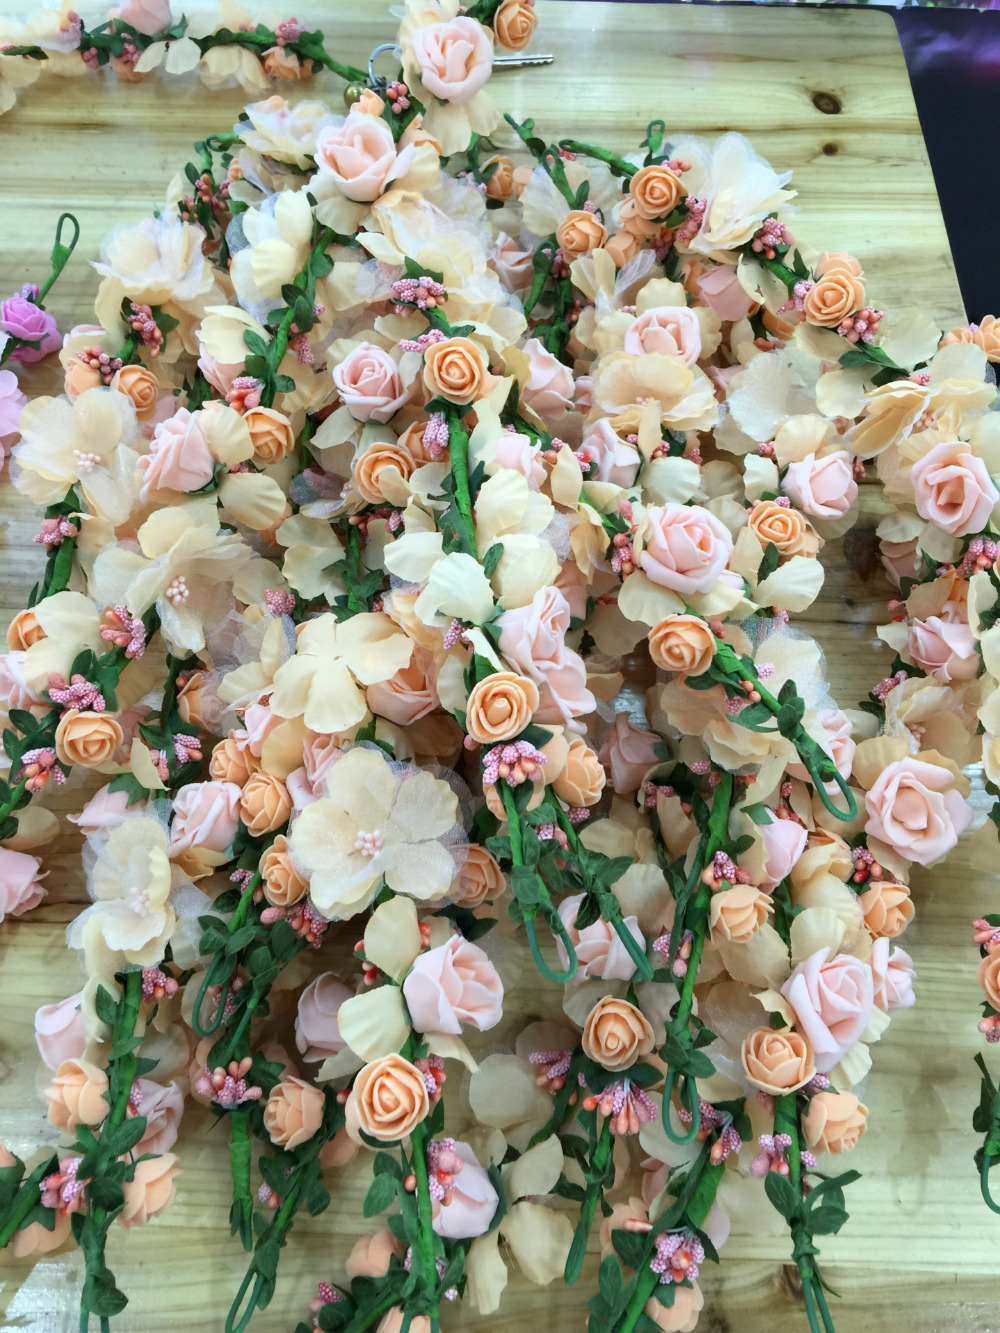 Beauty women bride flowers headbands bohemian style rose flower beauty women bride flowers headbands bohemian style rose flower crown hairband girls beach hair accessories in hair jewelry from jewelry accessories on izmirmasajfo